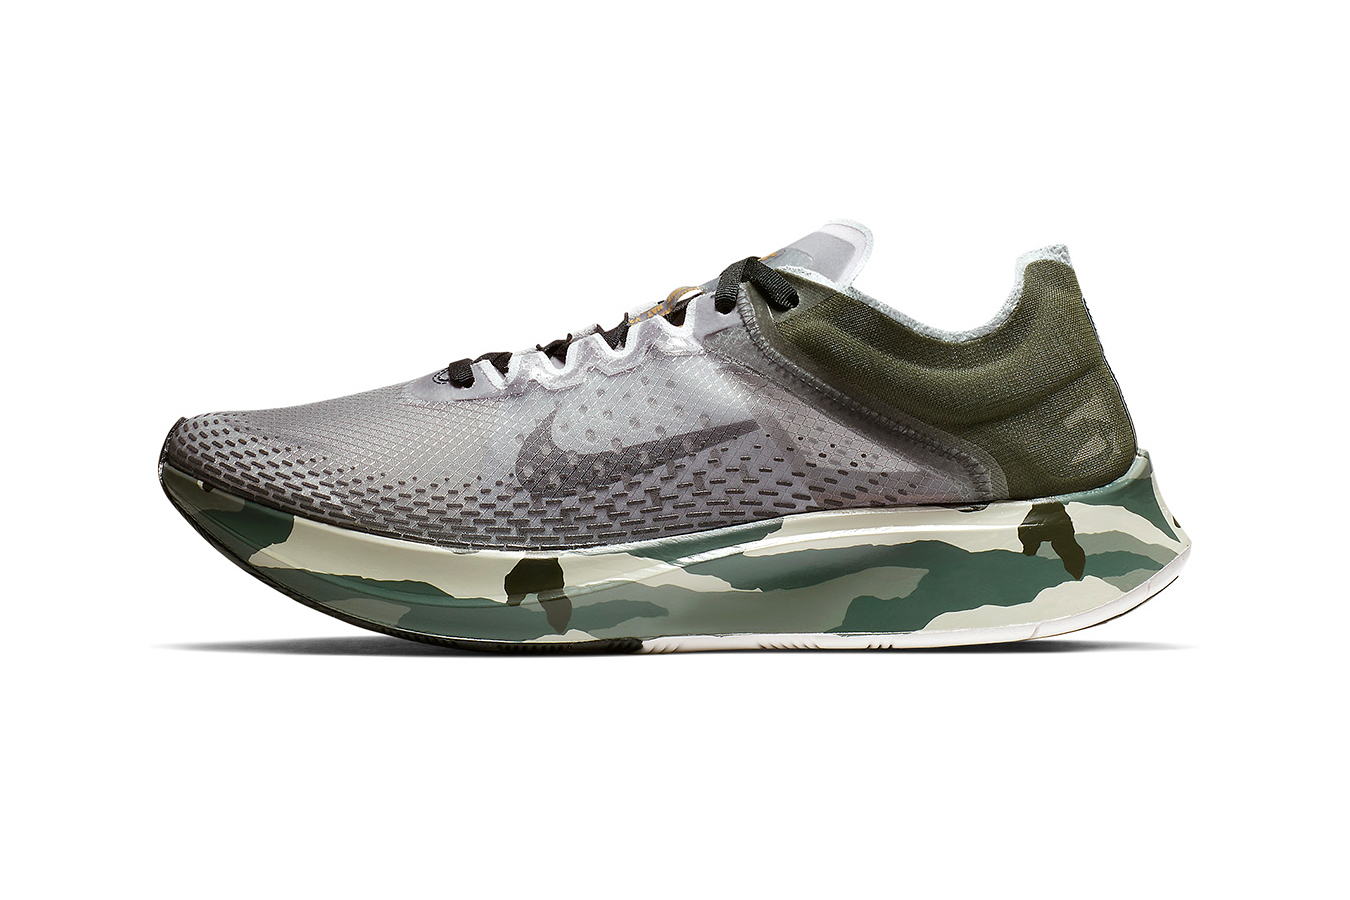 Nike Zoom Fly SP Fast Sequoia Golden Moss Release